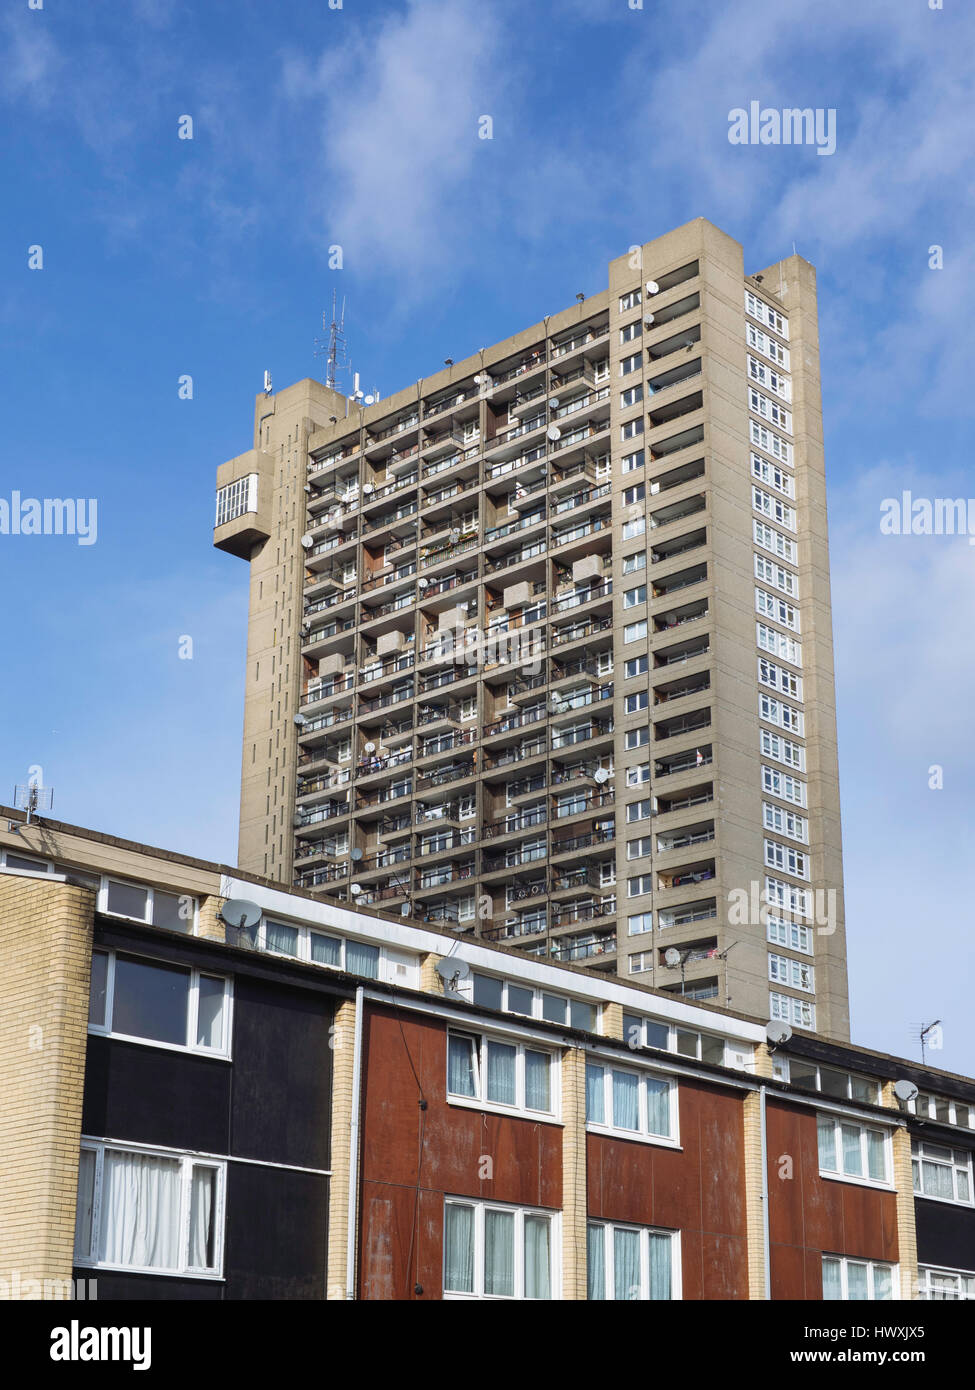 Trellick Tower, Notting Hill, London, England, UK - Stock Image